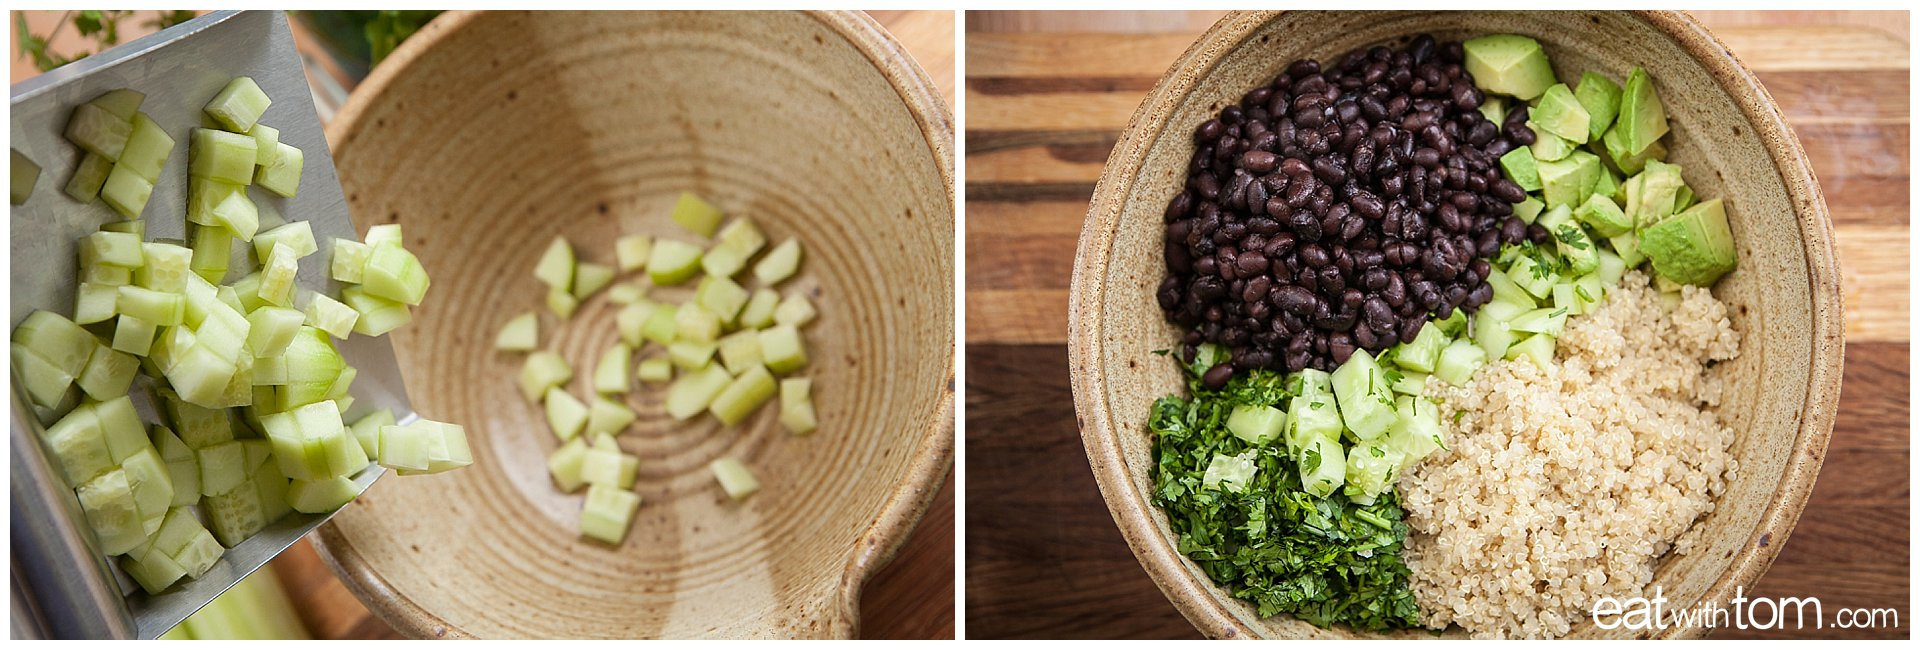 Chop cucumbers - Simple Black bean and Quinoa recipe